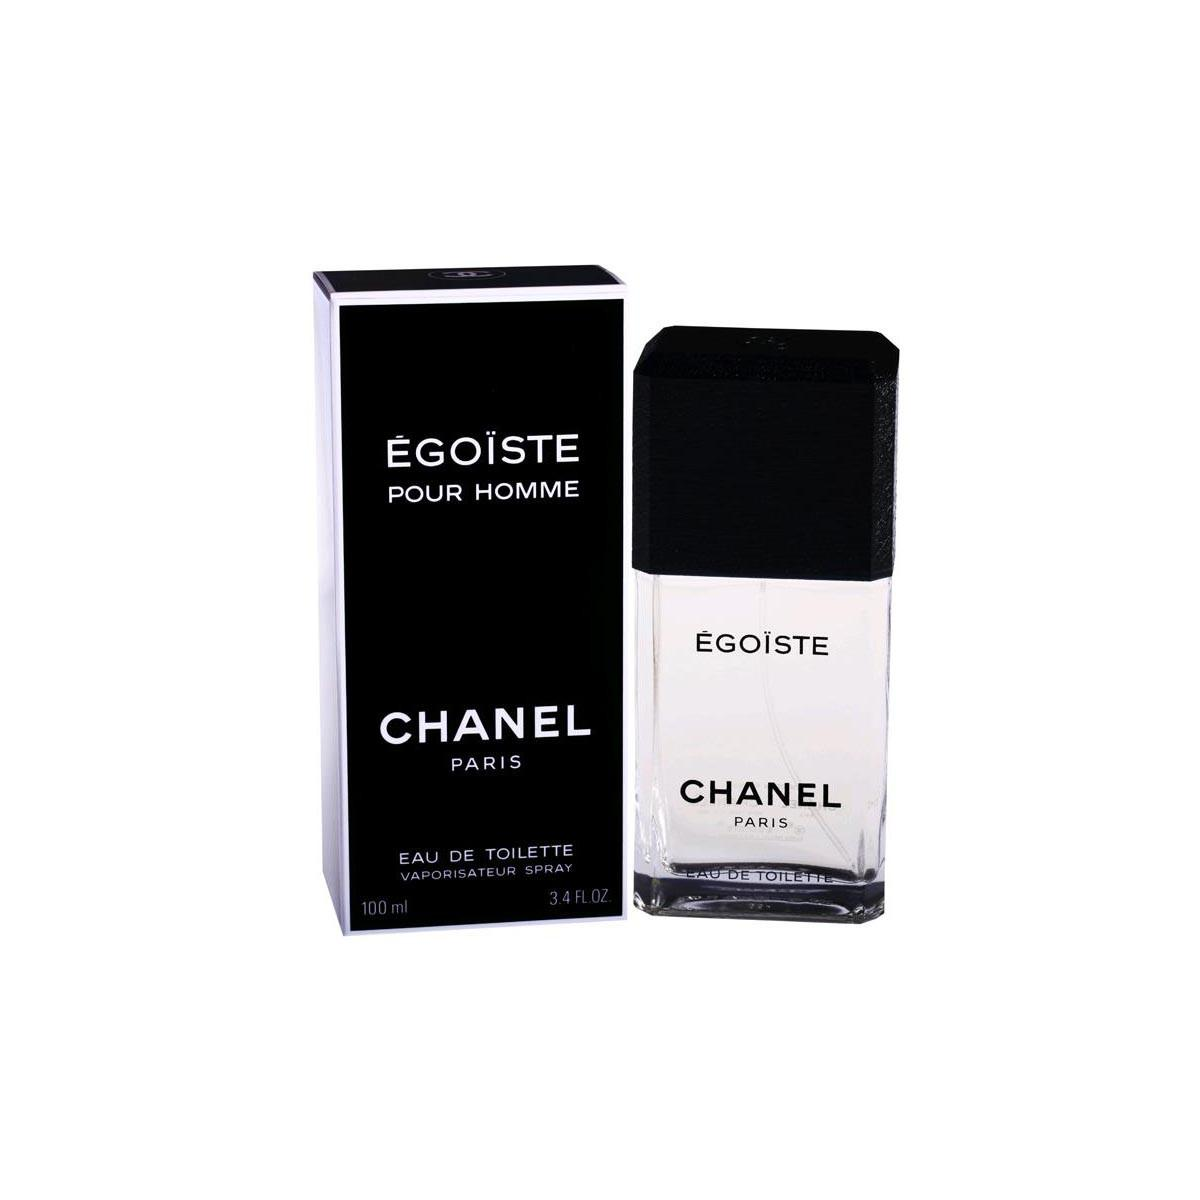 Chanel fragrances Egoiste Eau De Toilette 100ml